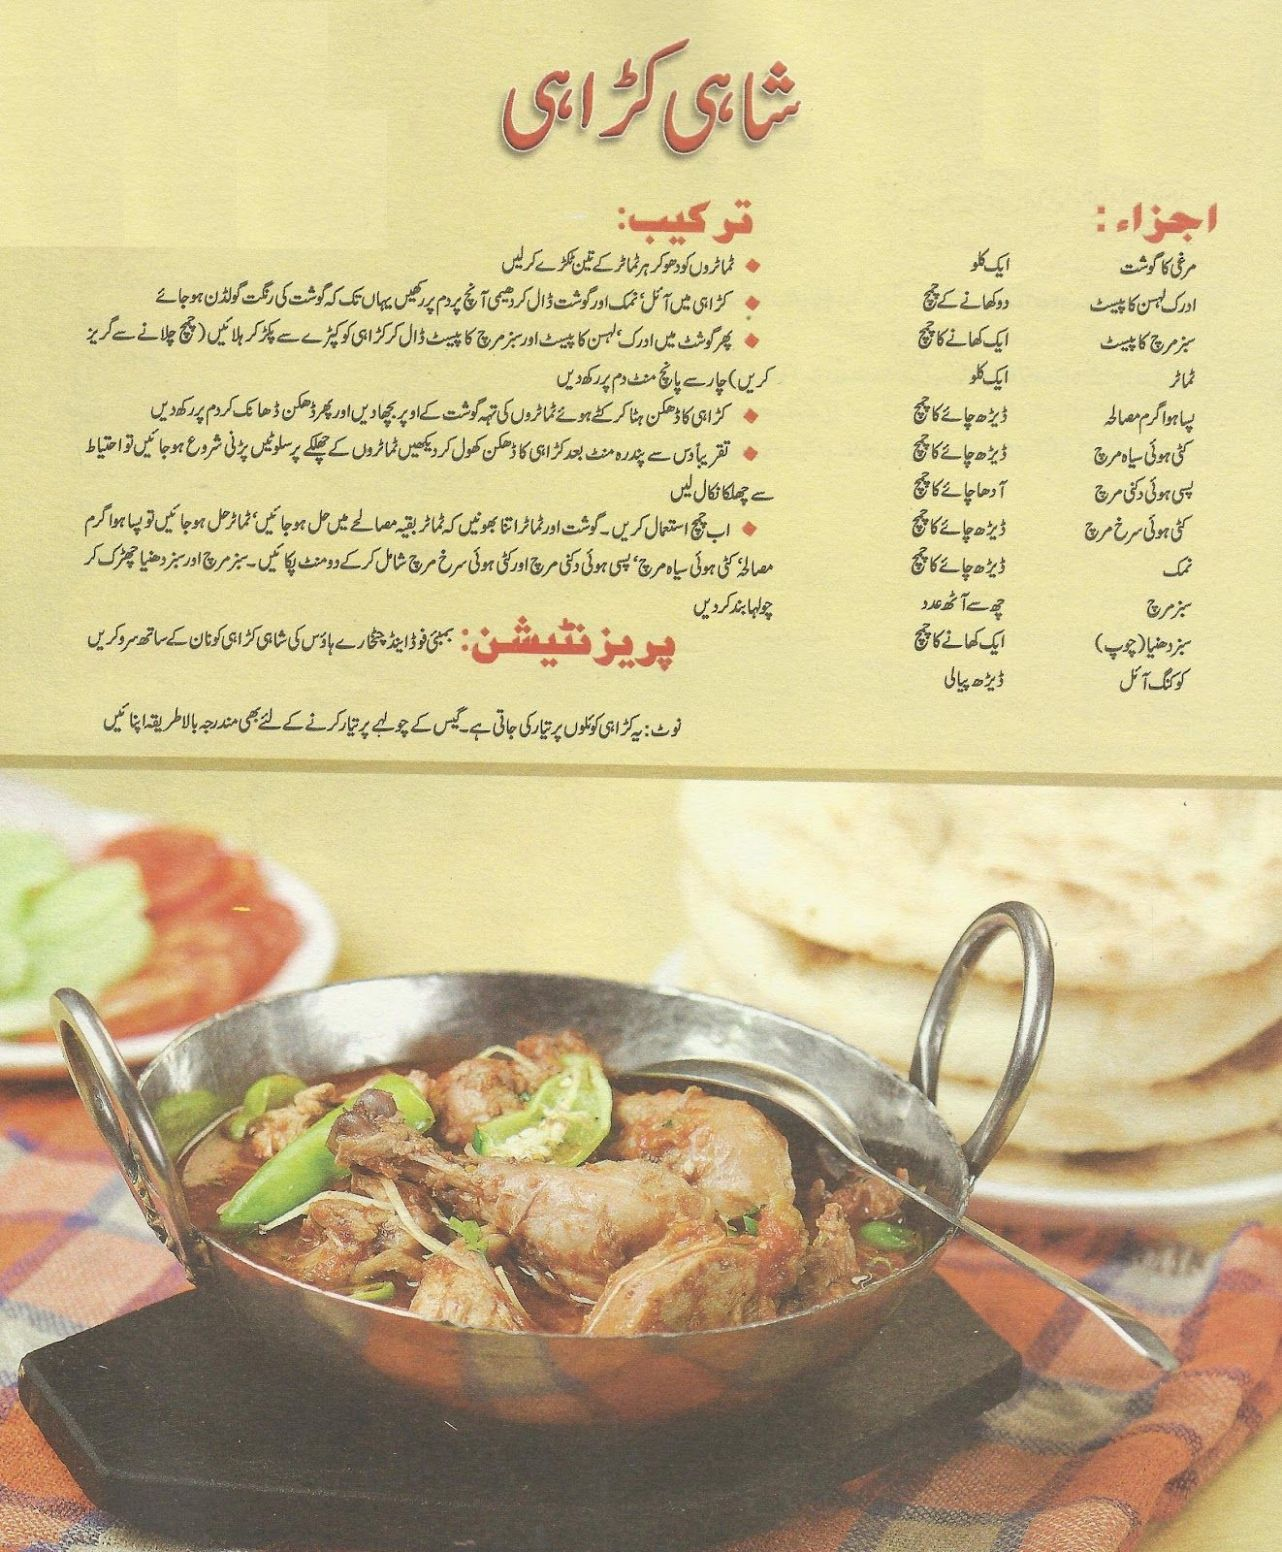 Shahi Karahi | Recipes, Cooking recipes, Curry chicken recipes - Recipes Chicken Karahi Urdu